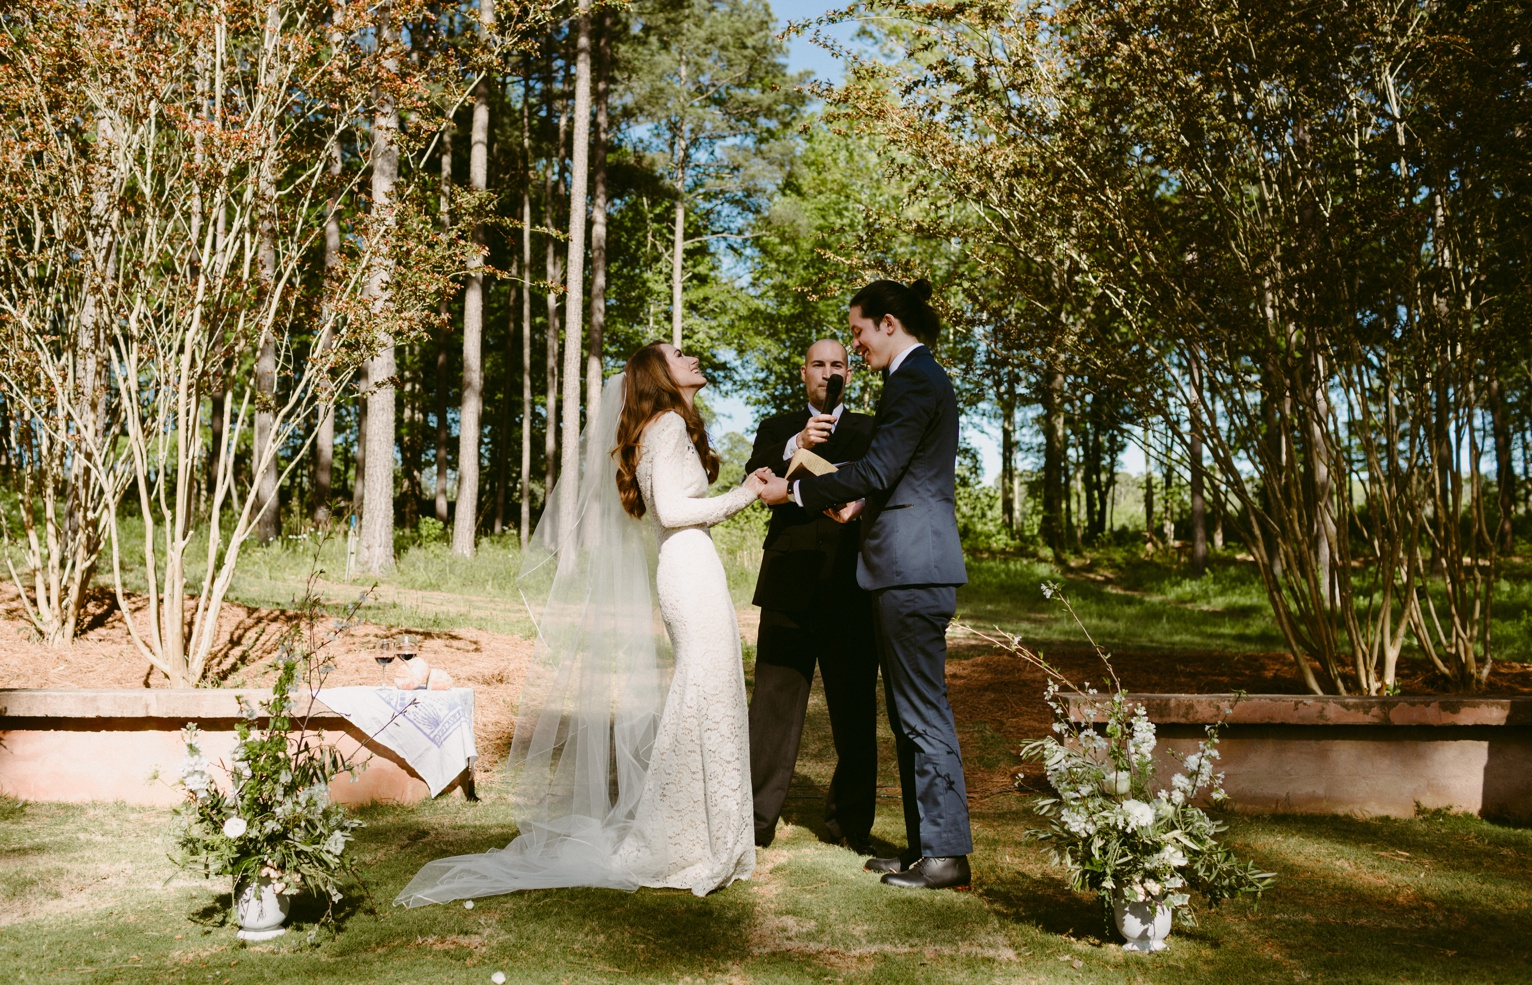 Dreamtownco.com_blog_Corey&Annie_Wedding_0127.jpg